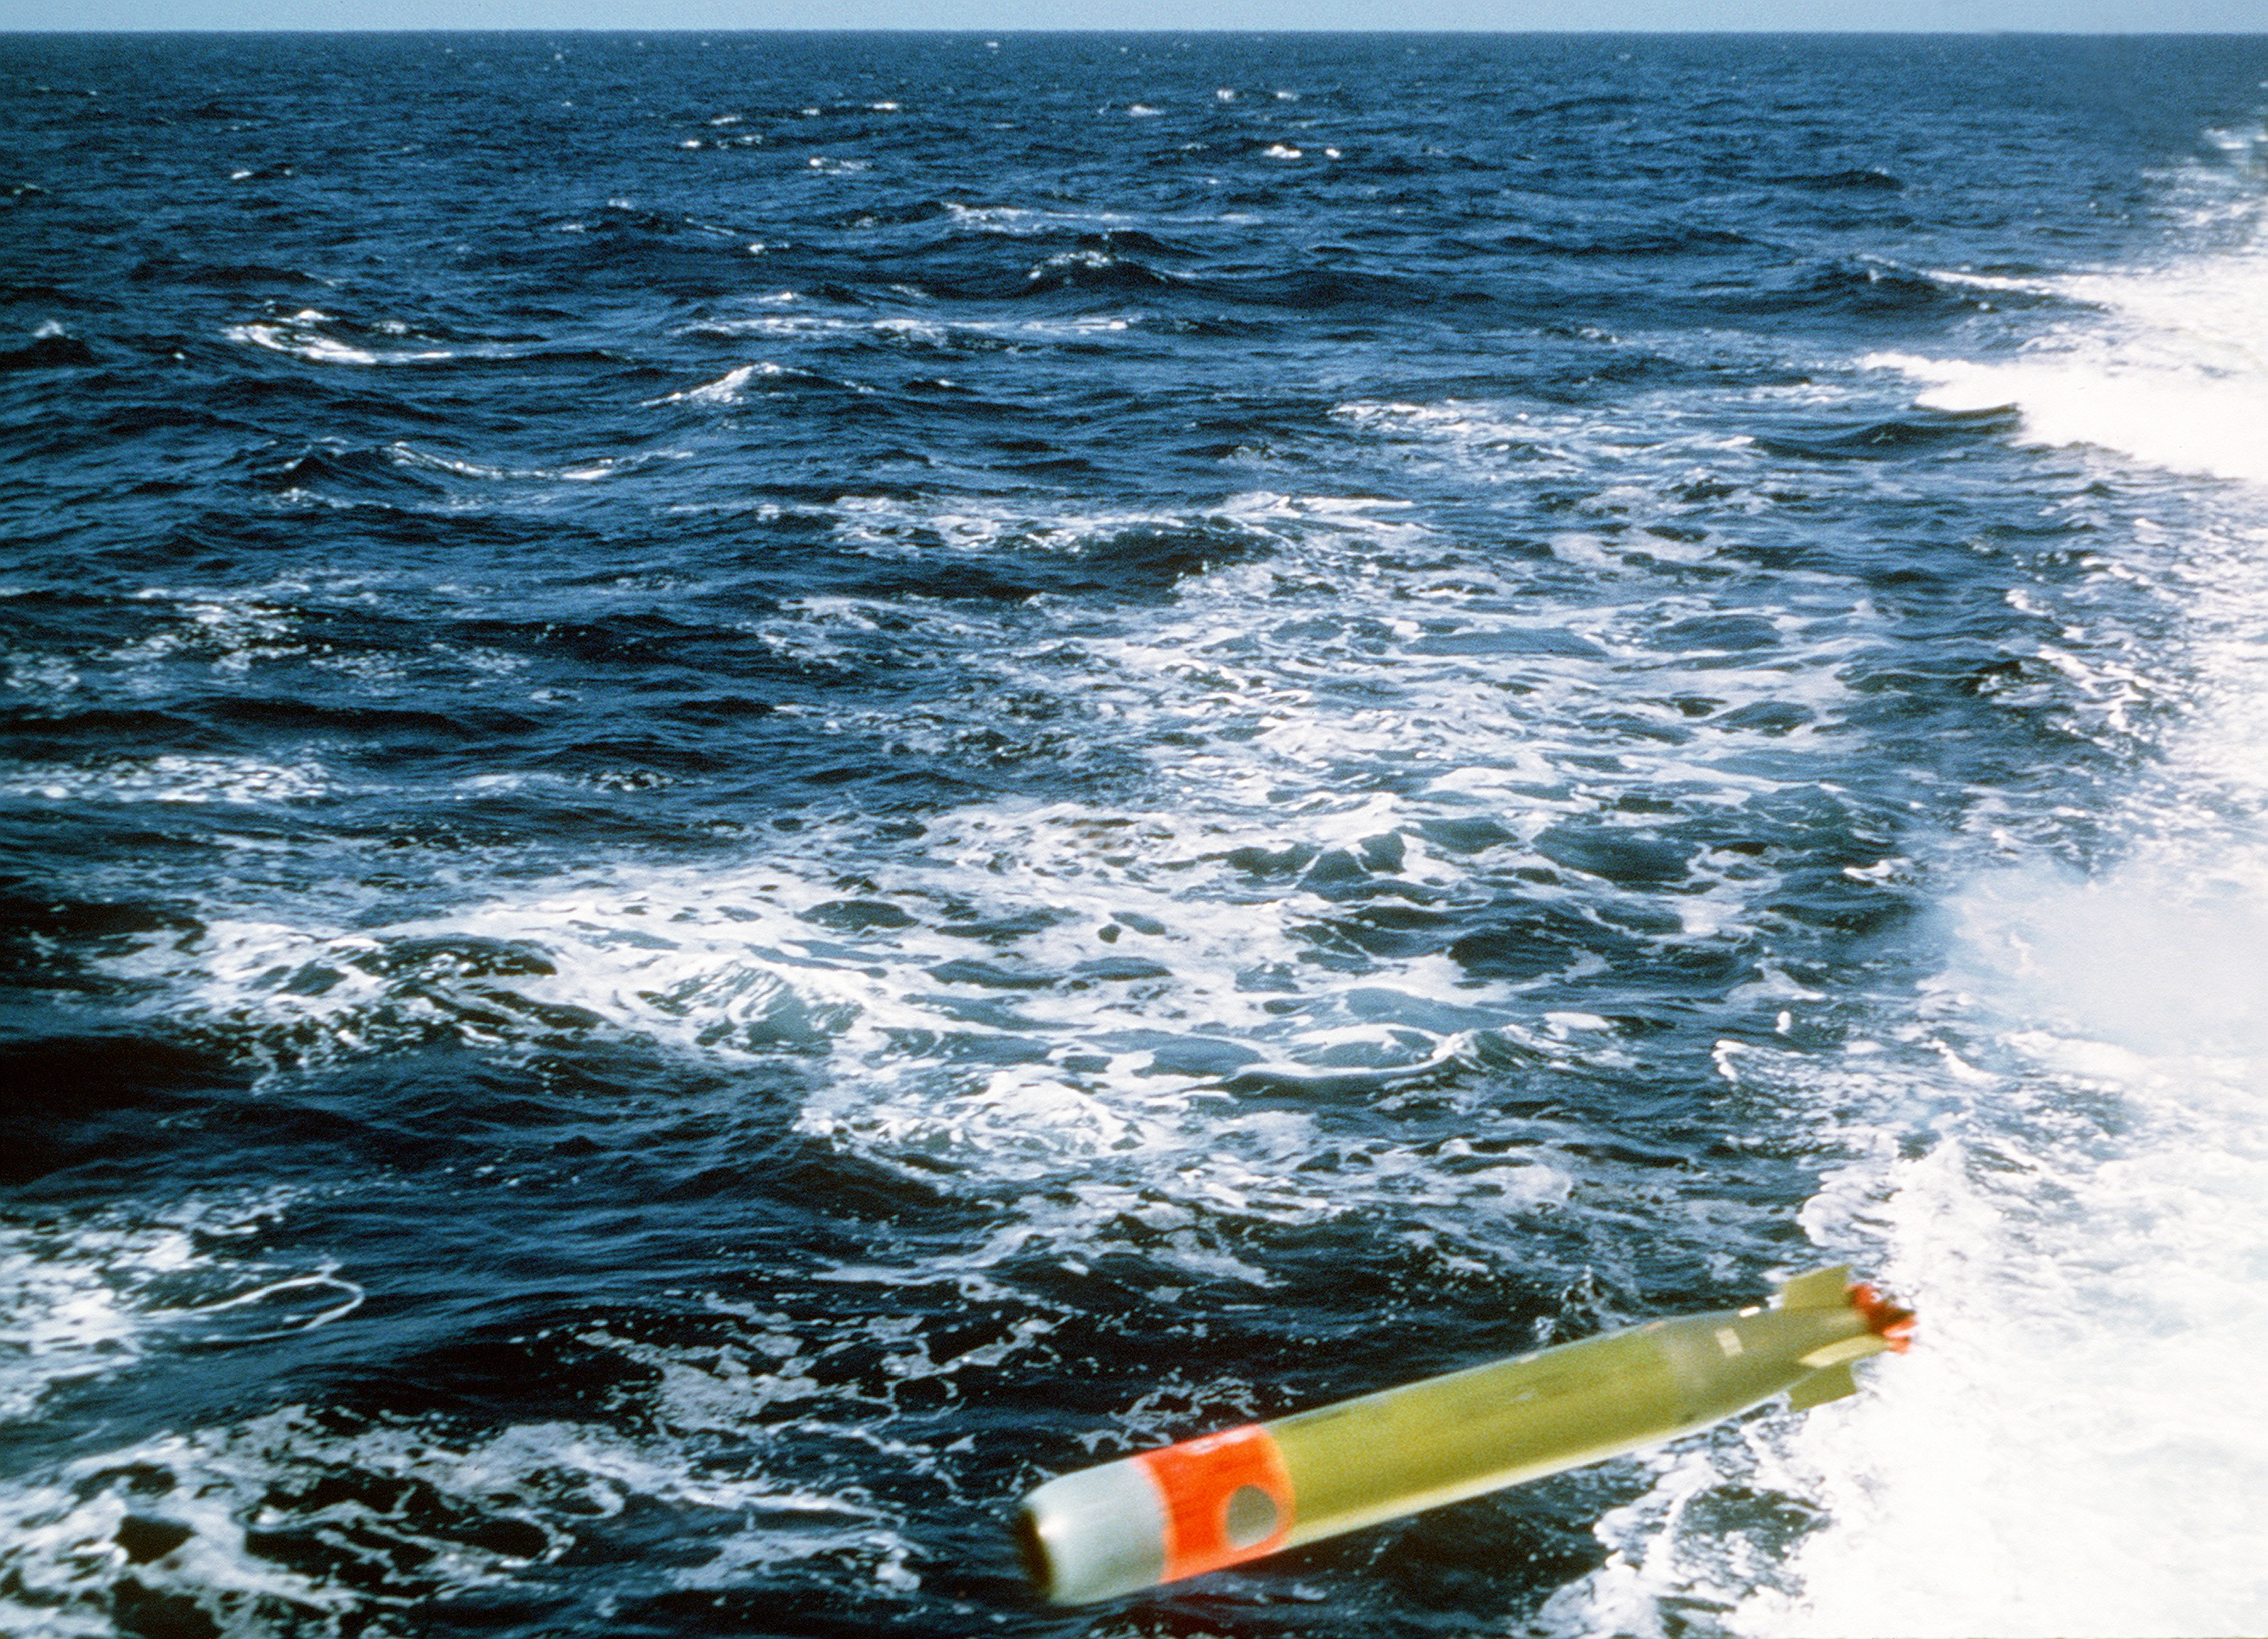 A Mark 46 torpedo is launched from the destroyer USS STUMP (DD-978) during anti-submarine warfare exercises